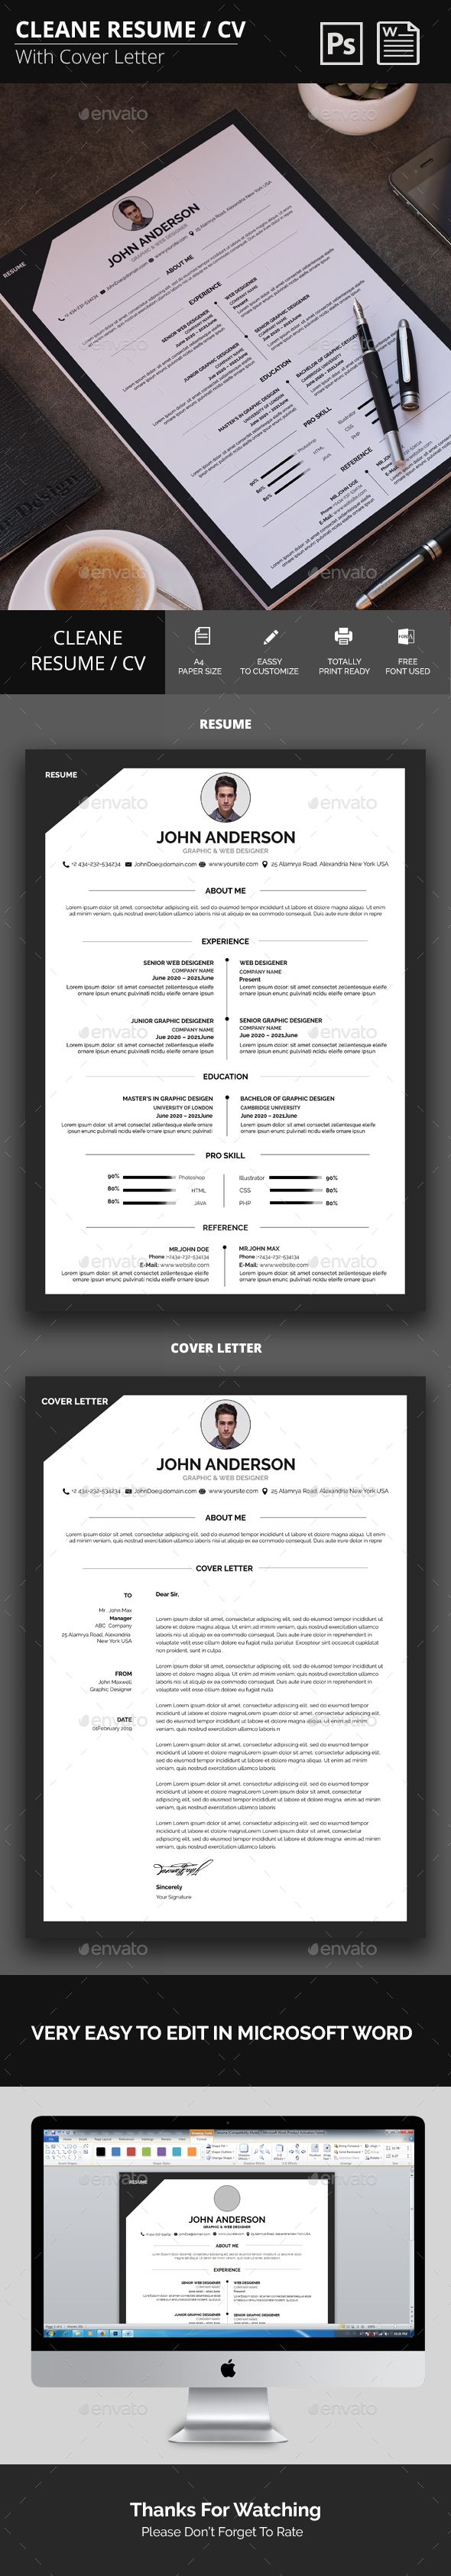 Resume_CV #black resume #resume template  • Download here → https://graphicriver.net/item/resume_cv/21400223?ref=pxcr